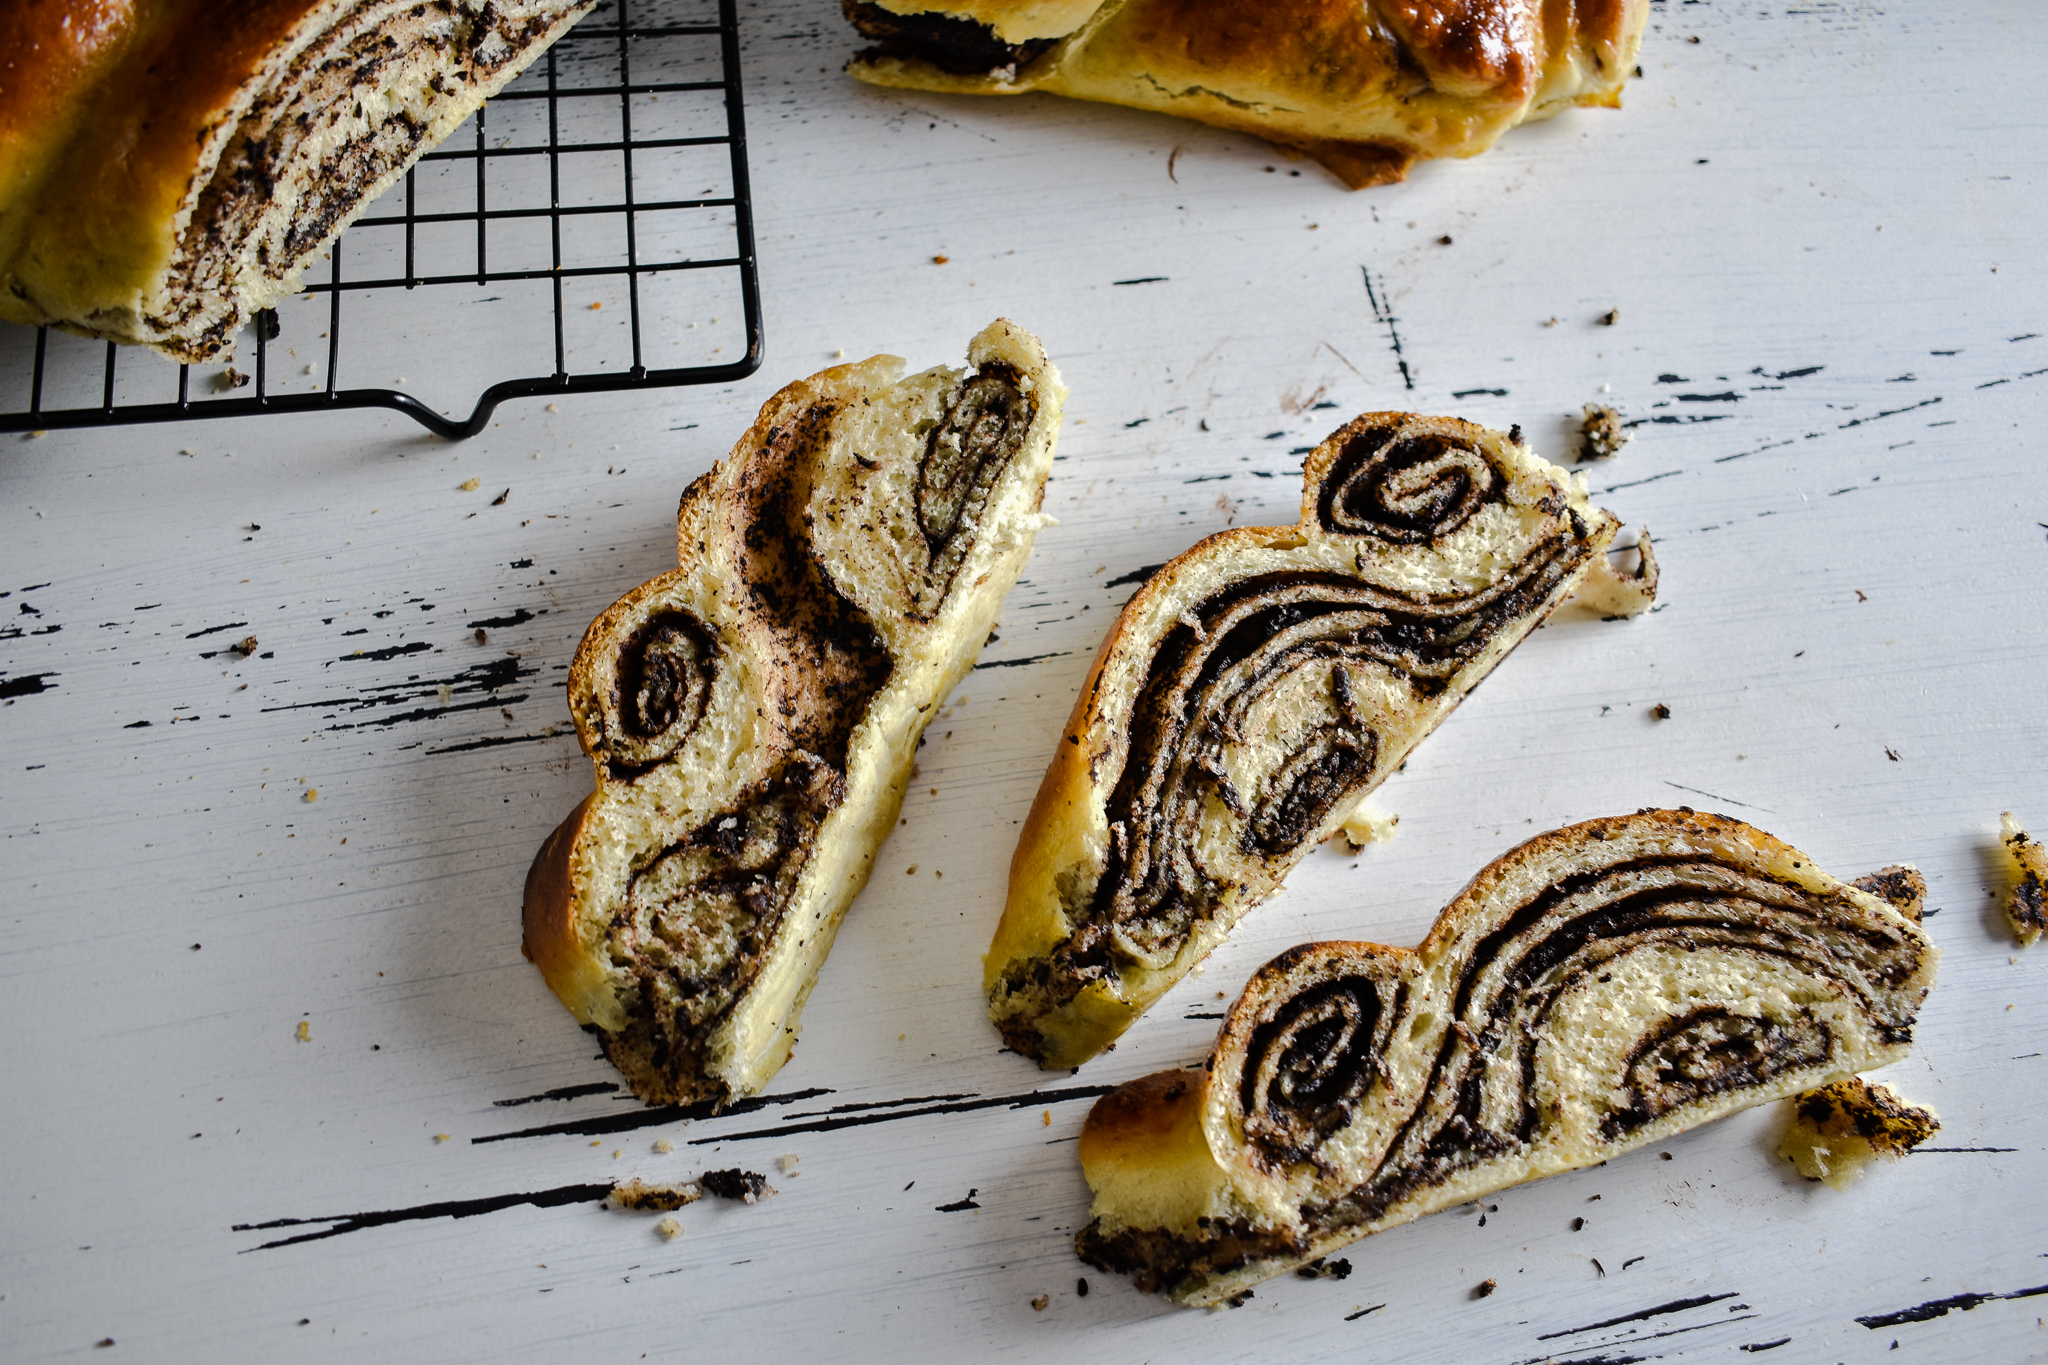 Braided-bread-recipe-with-chocolate-filling-4-SunCakeMom